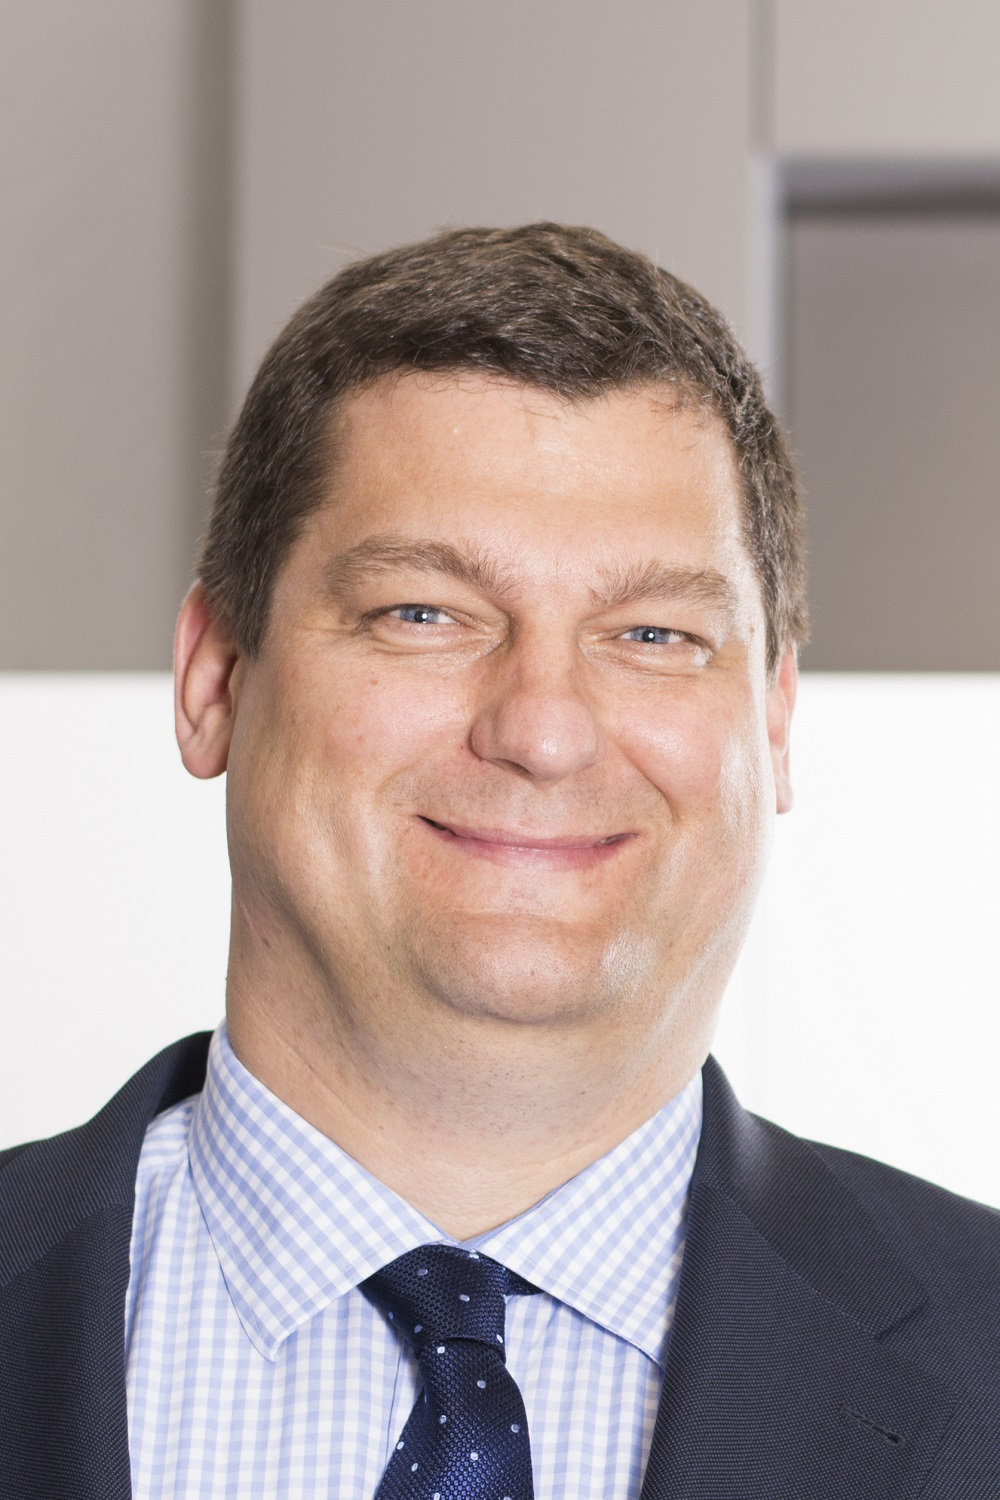 Thorsten Hagenberger, Director of Professional Services SAS DACH